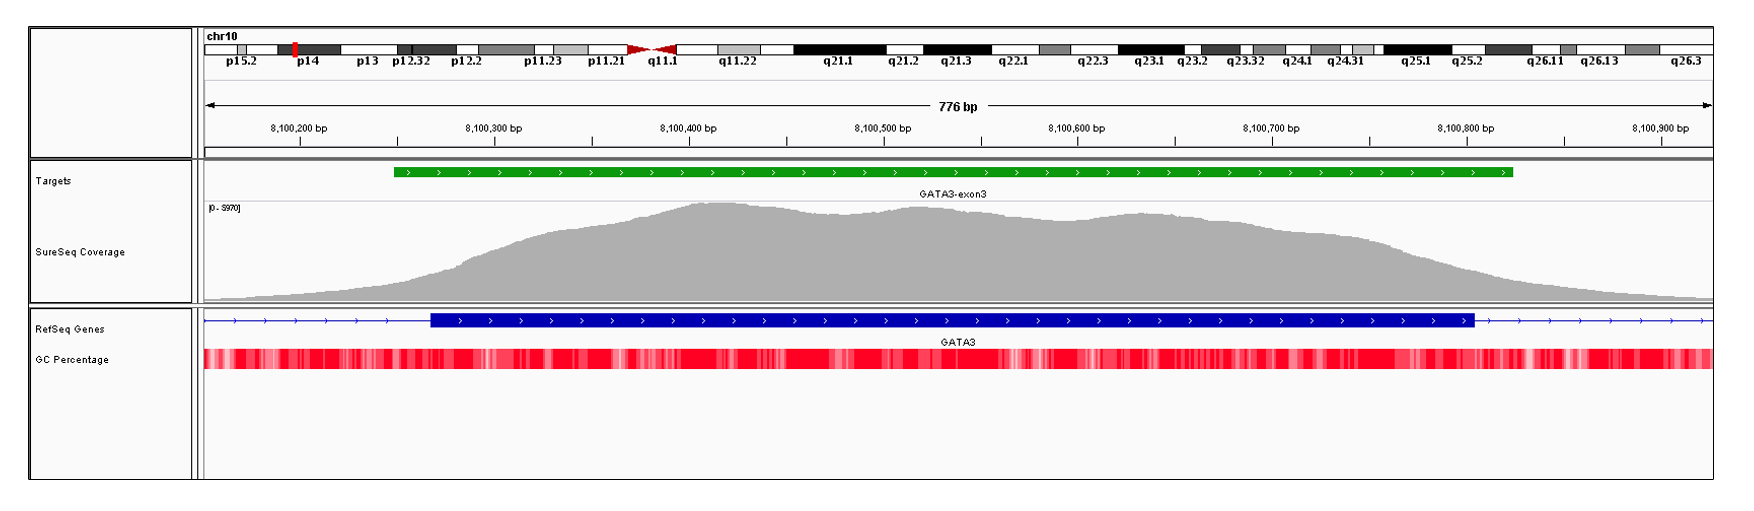 GATA3 Exon 3 (hg19 chr10:8100268-8100804). Depth of coverage per base (grey). Targeted region (green). Gene coding region as defined by RefSeq (blue). GC percentage (red). Image